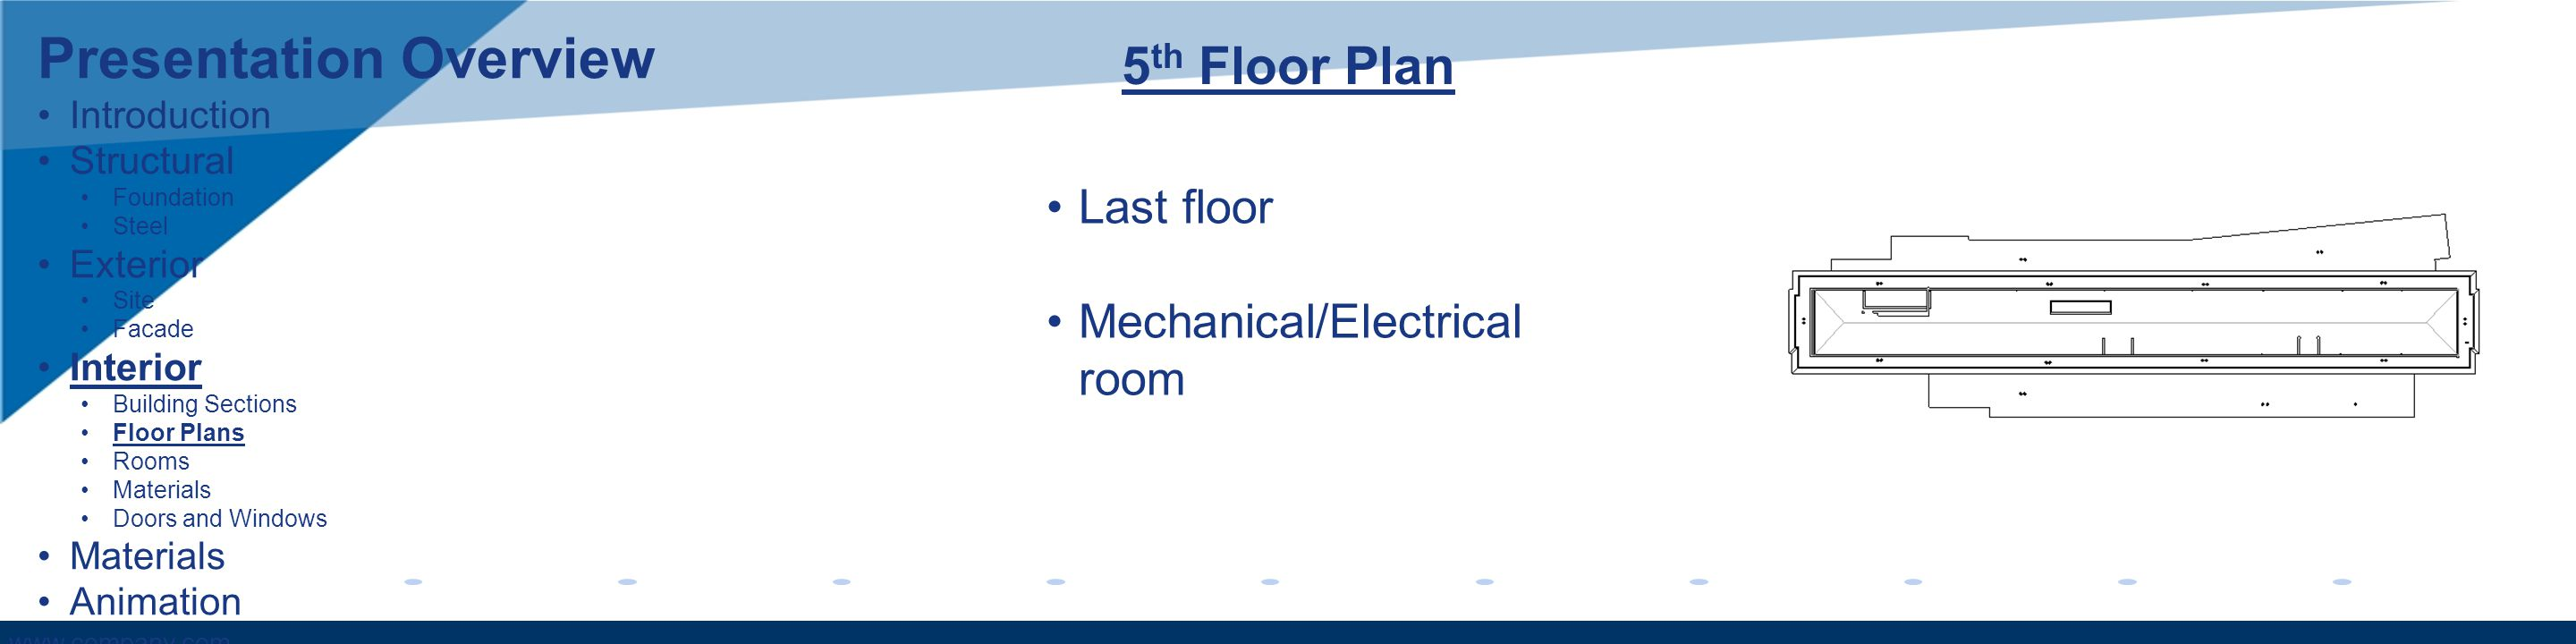 www.company.com 5 th Floor Plan Last floor Mechanical/Electrical room Presentation Overview Introduction Structural Foundation Steel Exterior Site Facade Interior Building Sections Floor Plans Rooms Materials Doors and Windows Materials Animation